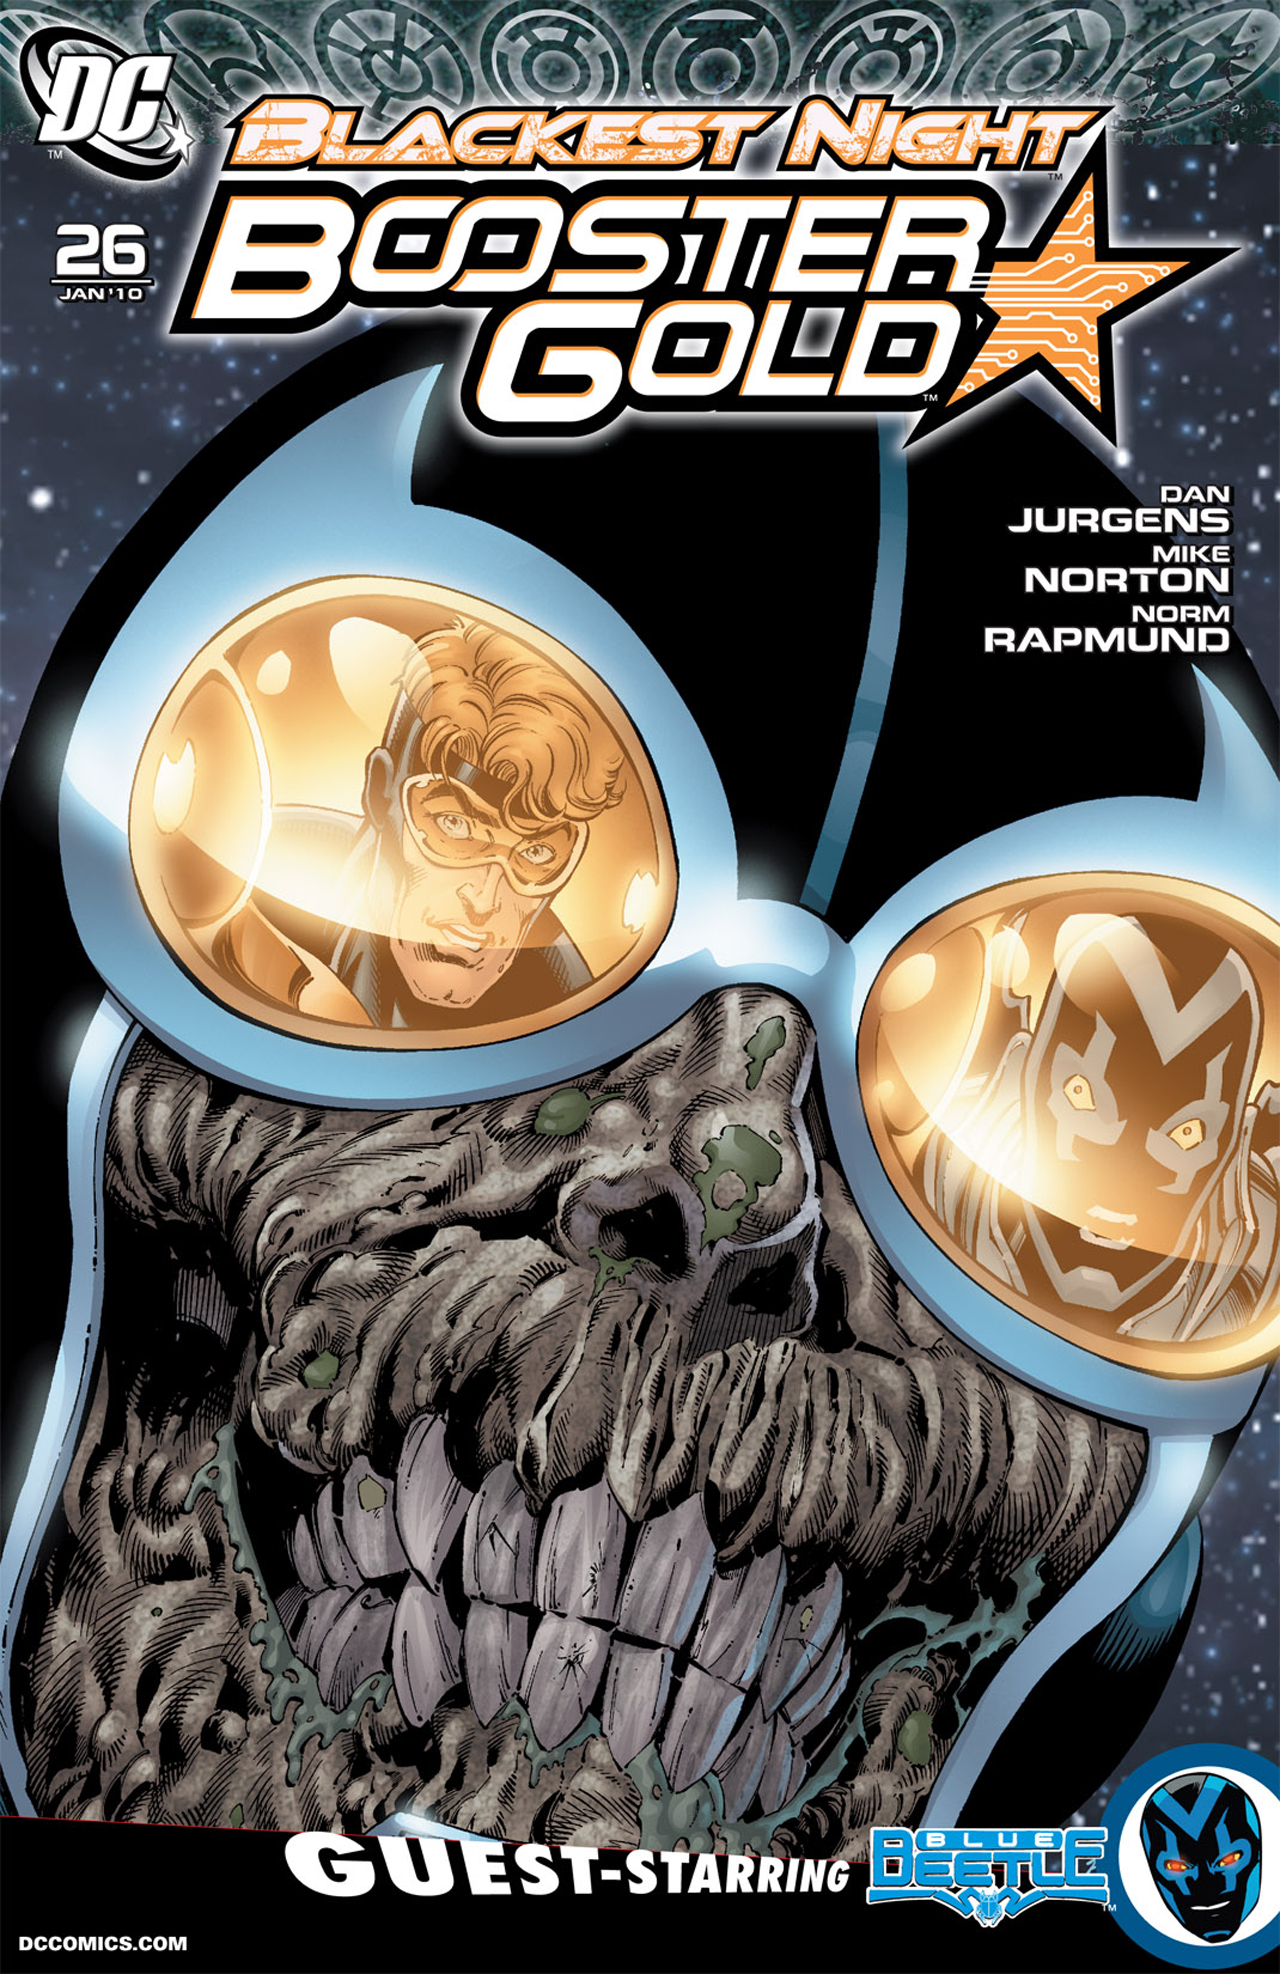 Booster Gold 2007 Issue 26